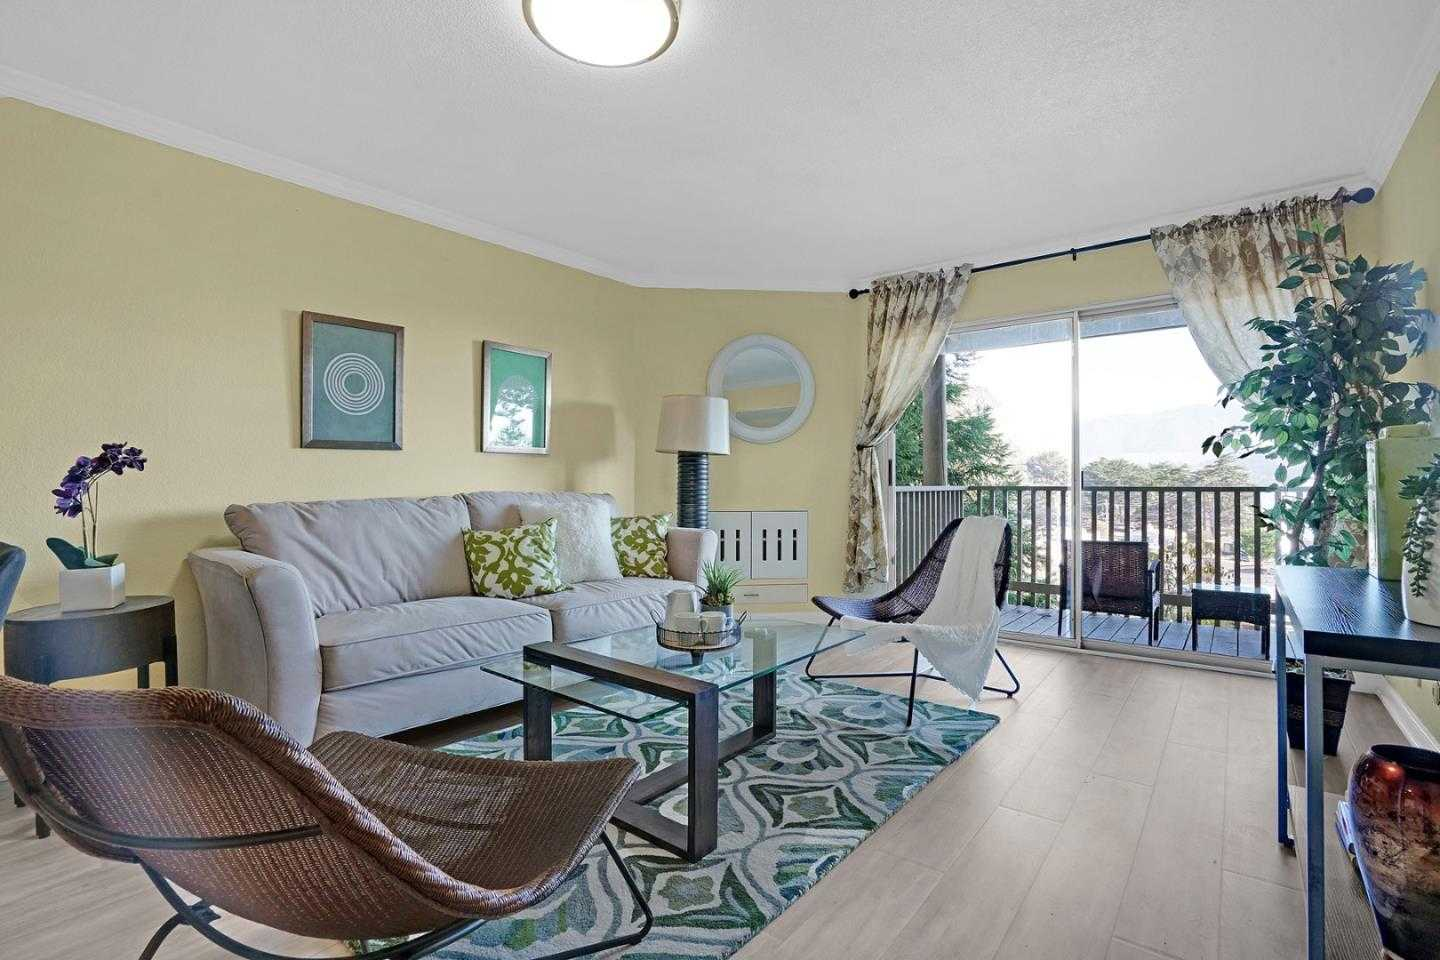 $485,000 - 1Br/1Ba -  for Sale in Daly City